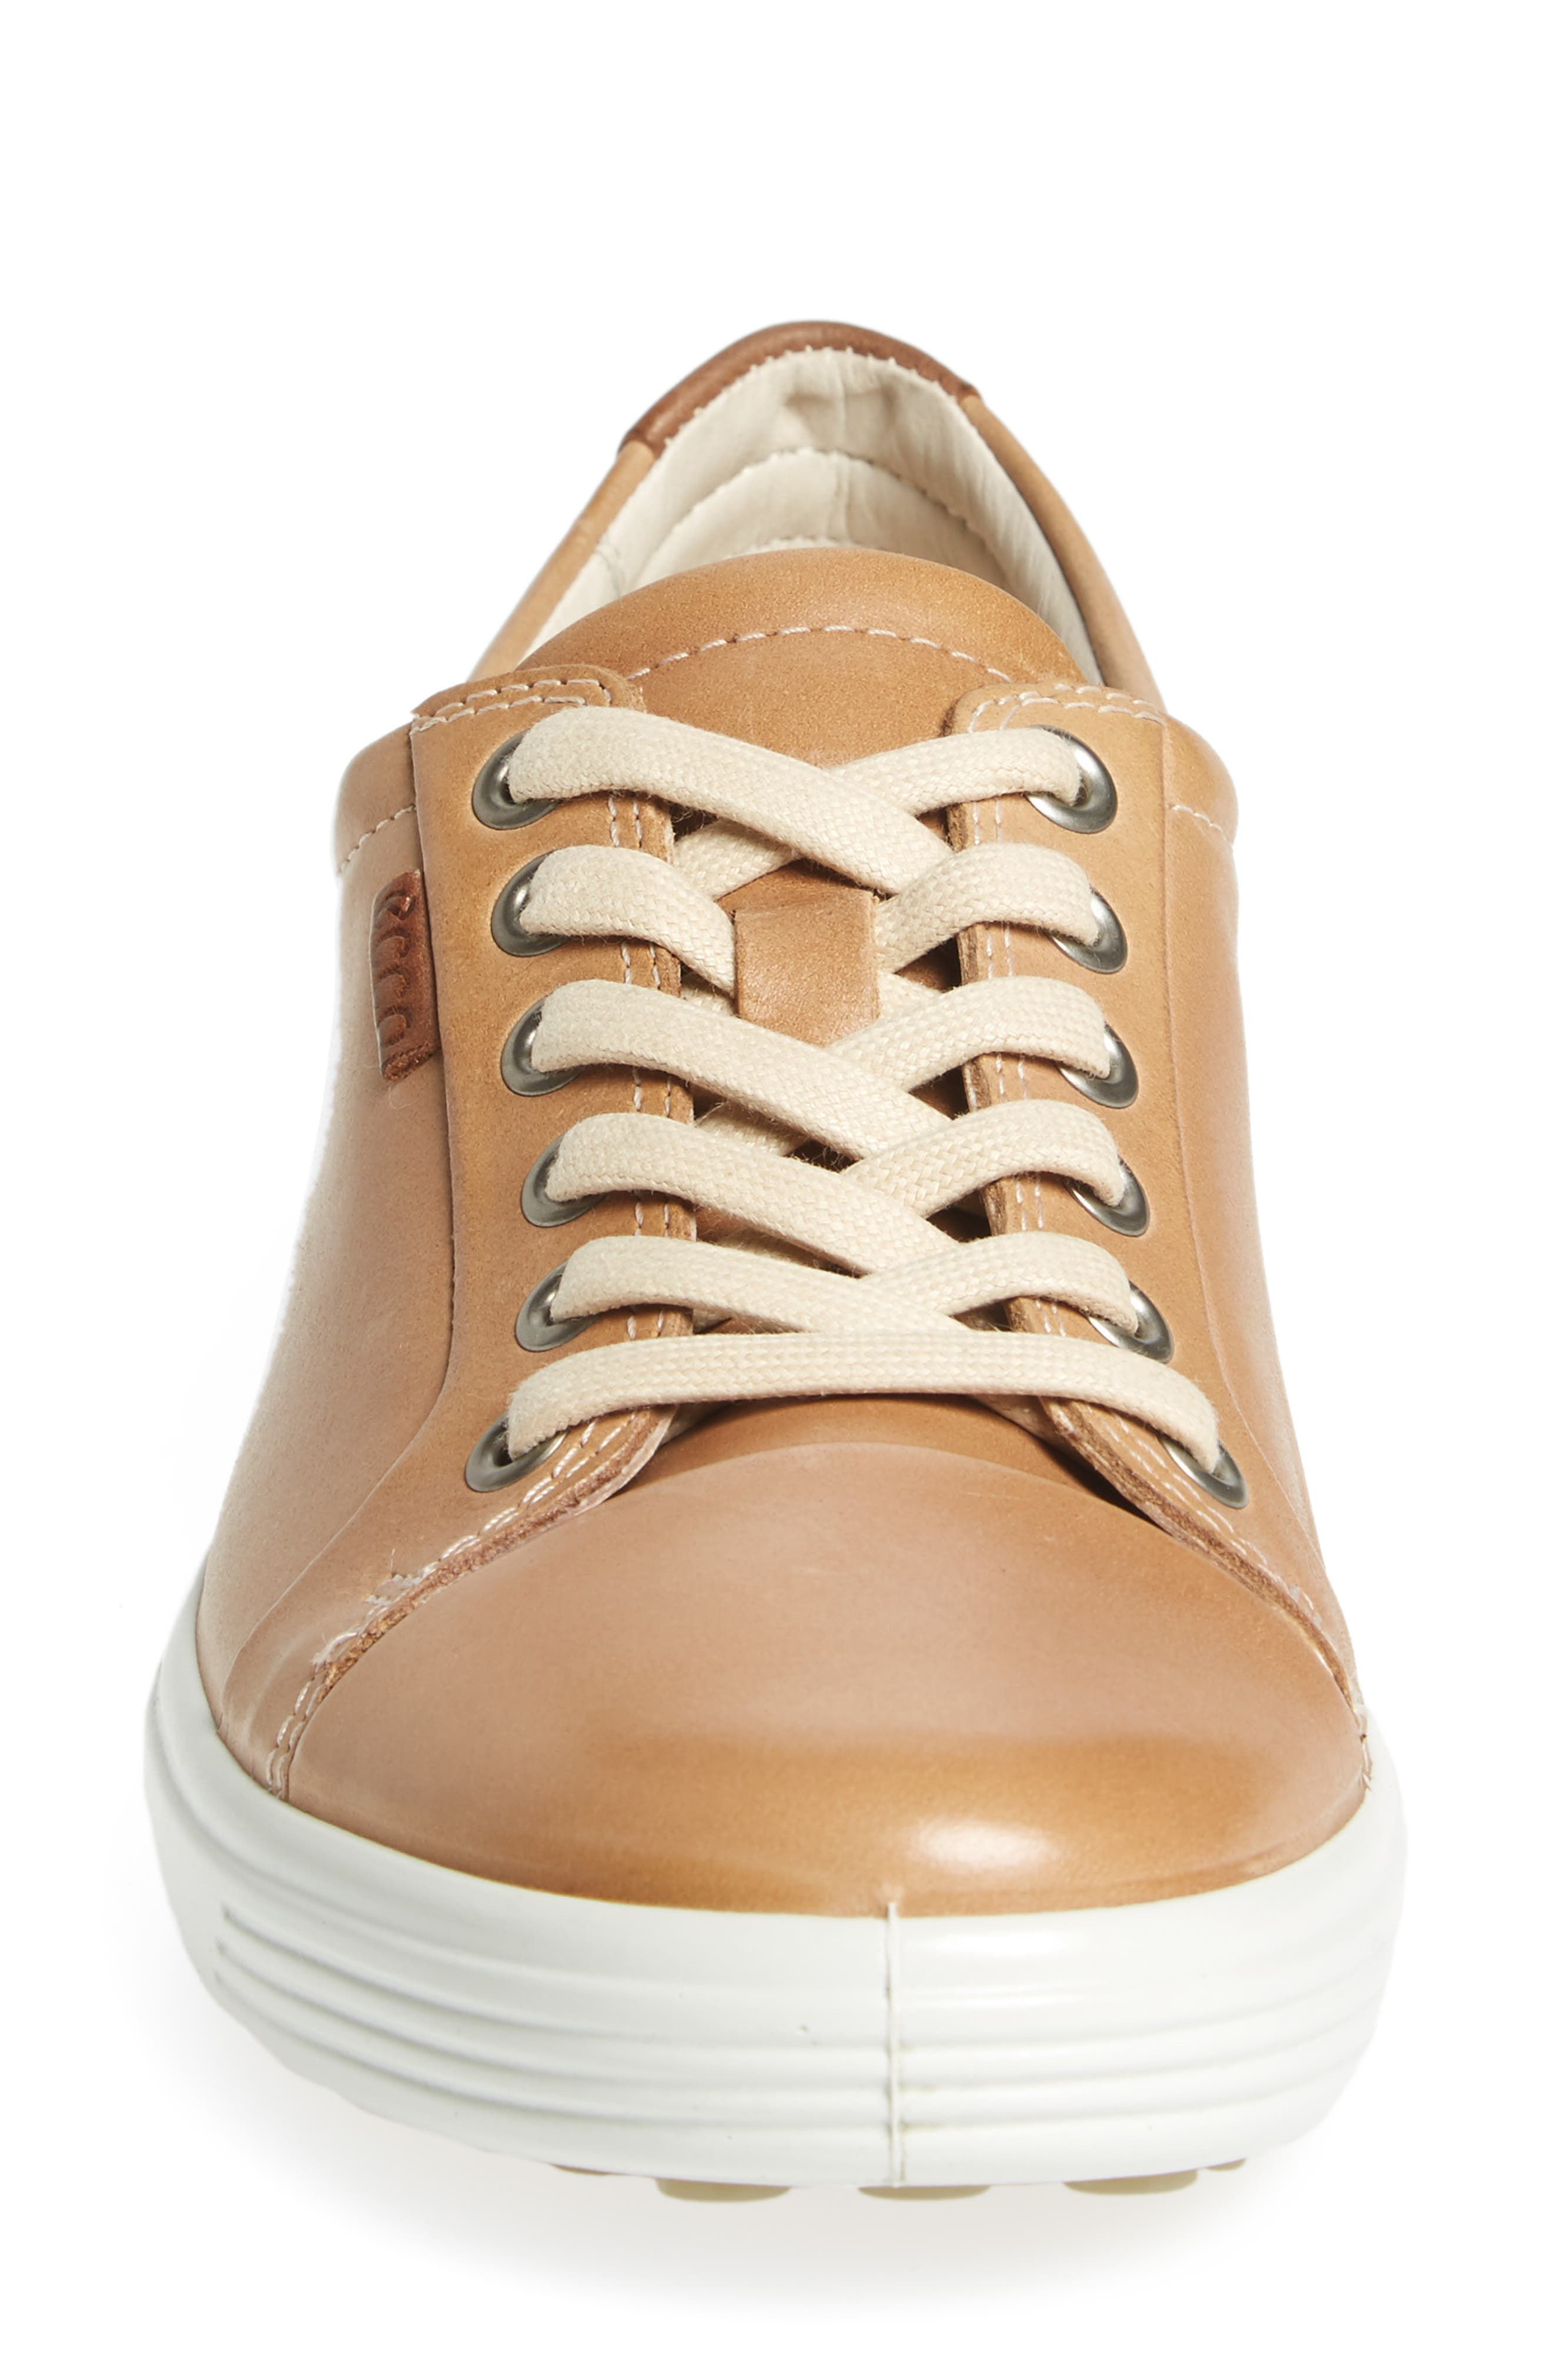 Soft 7 Sneaker,                             Alternate thumbnail 4, color,                             POWDER LEATHER